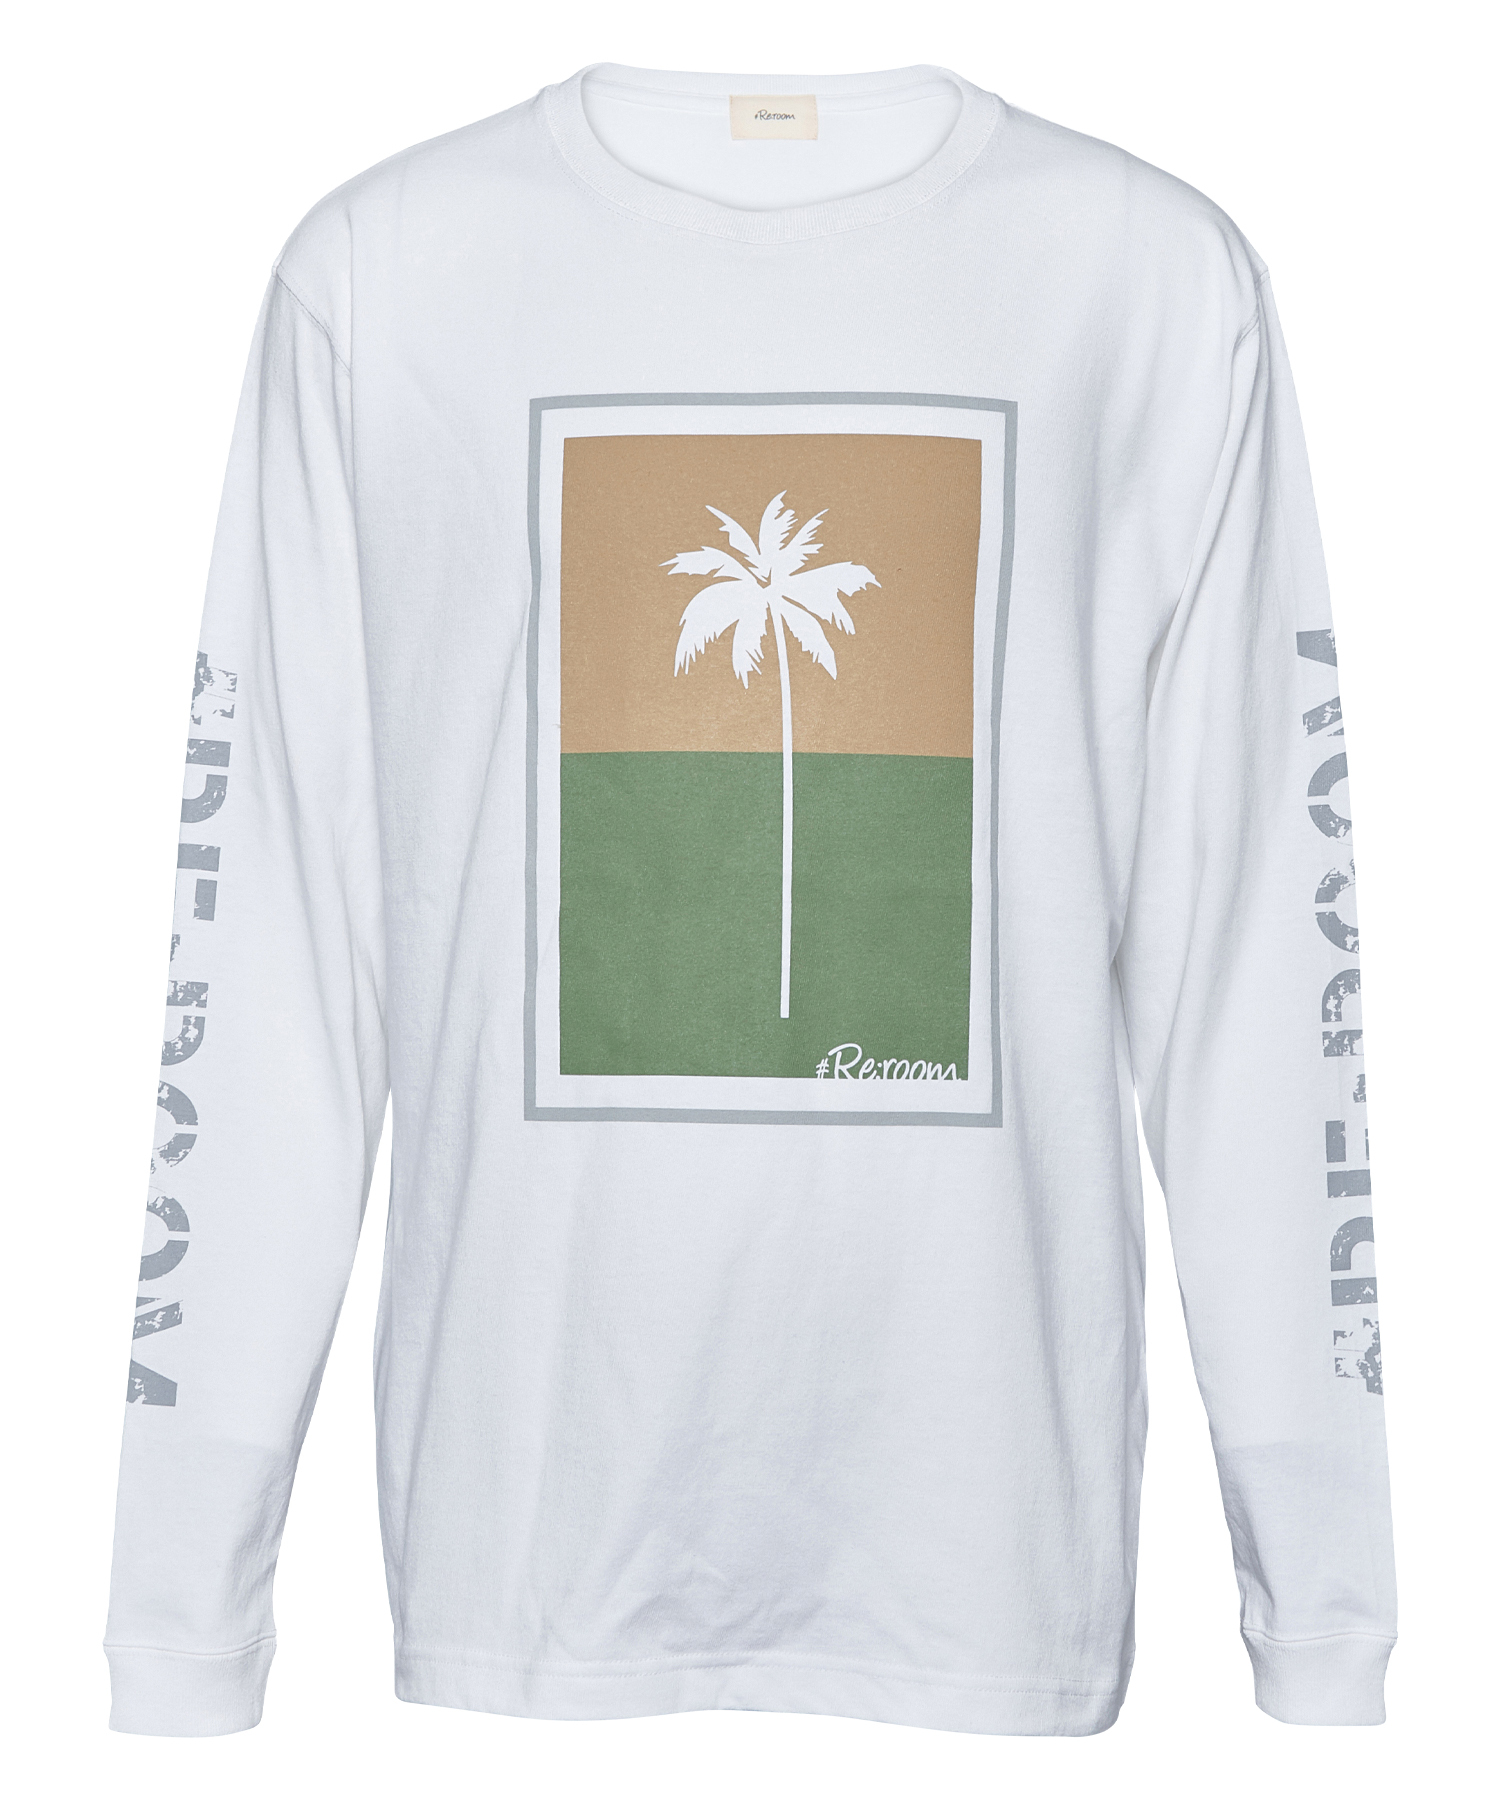 PALM TREE ARM LOGO LONG SLEEVE[REC329]